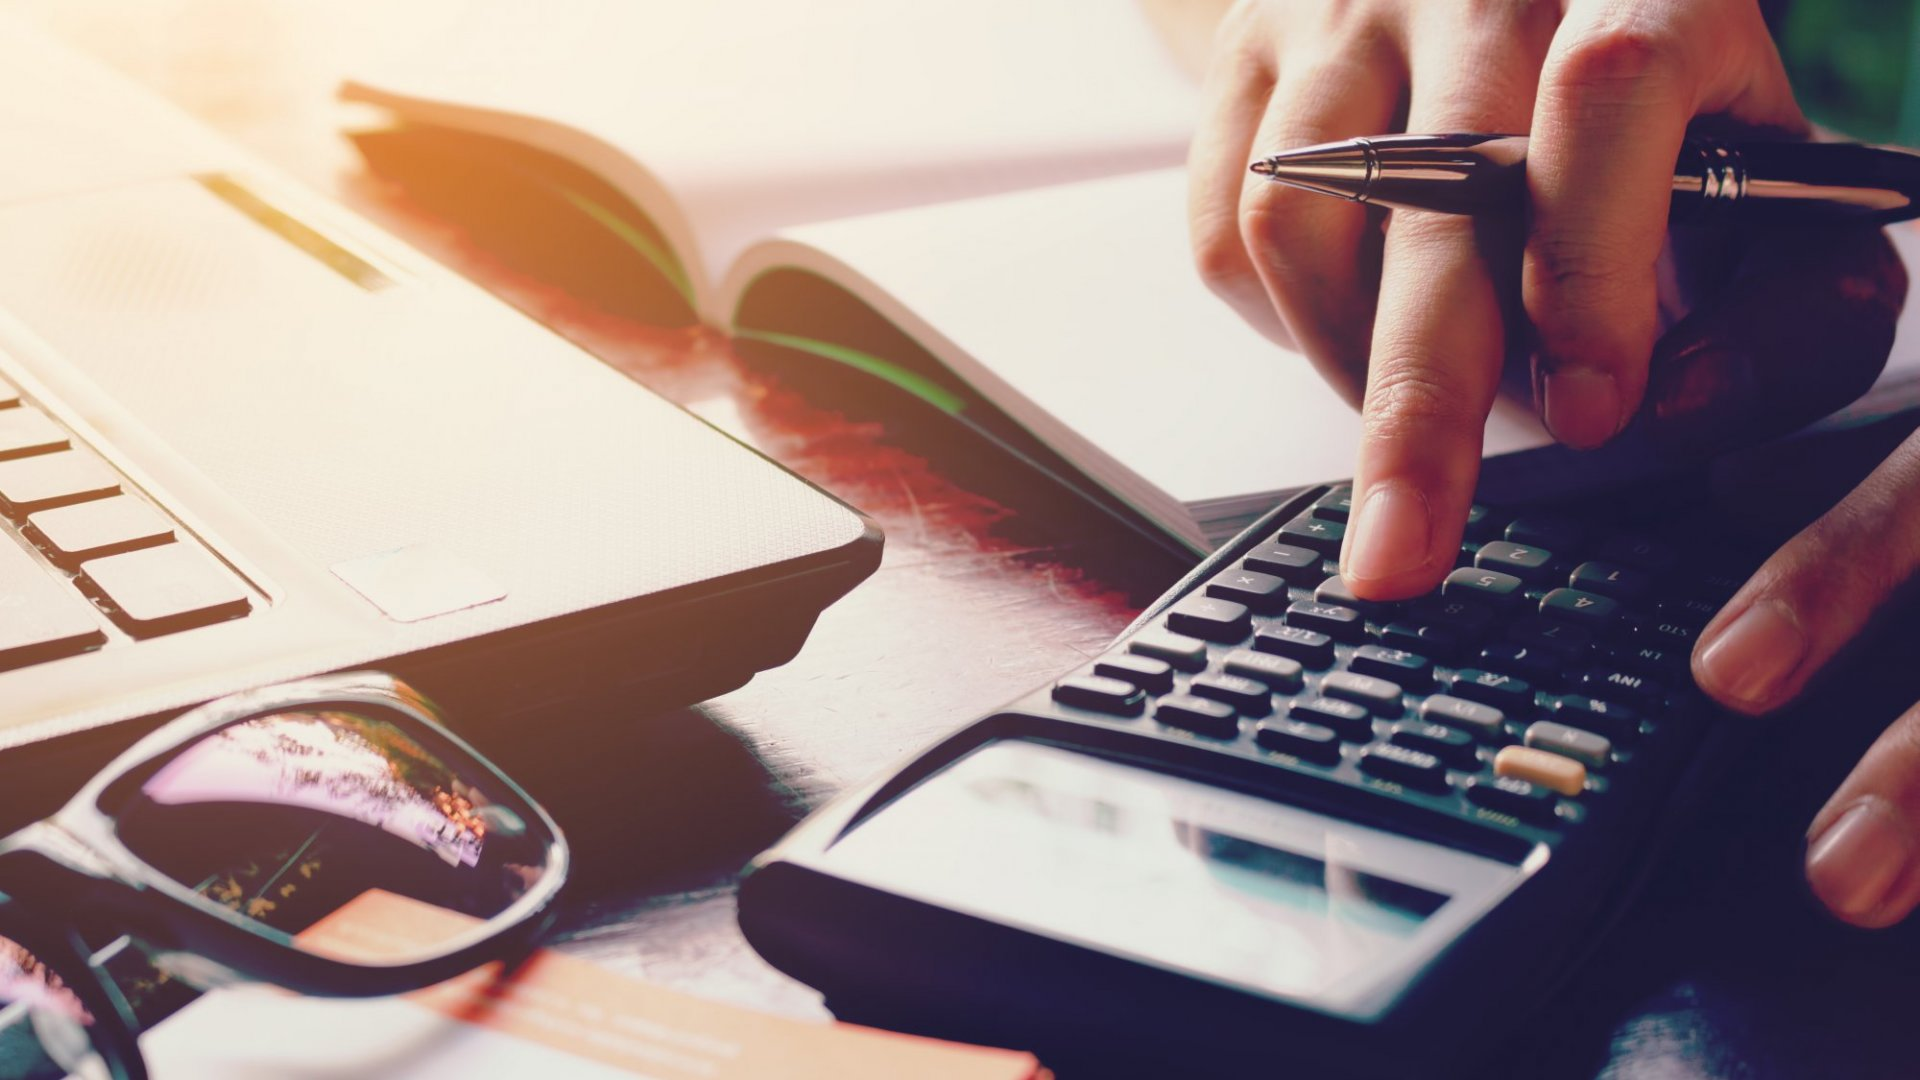 9 Business Deductions to Take Advantage Of This Tax Season